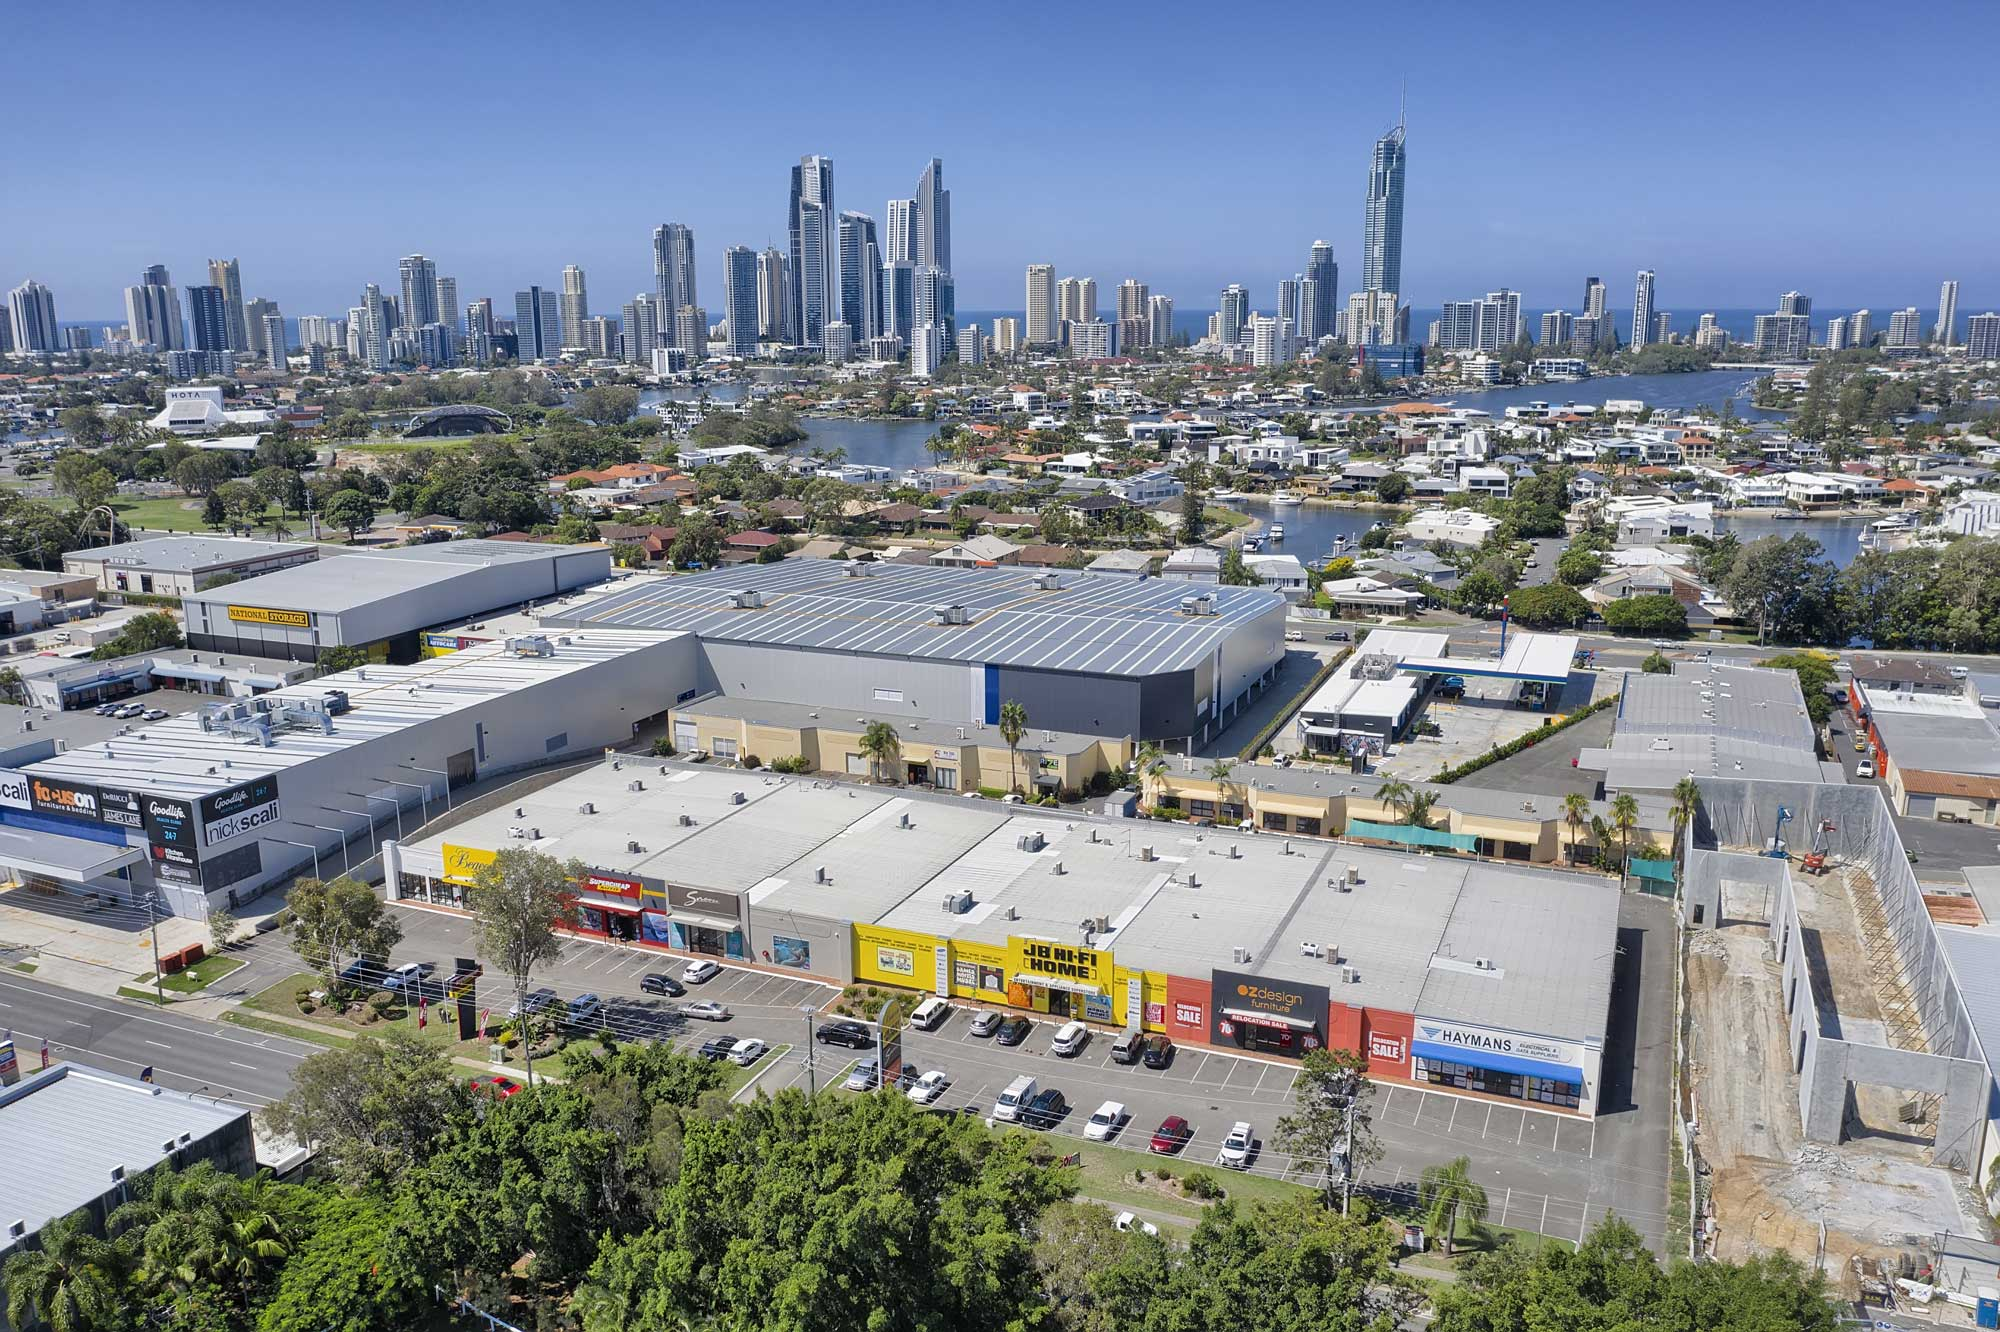 40 metres above the ground - drone photography of large format commercial building at Upton St, Bundall